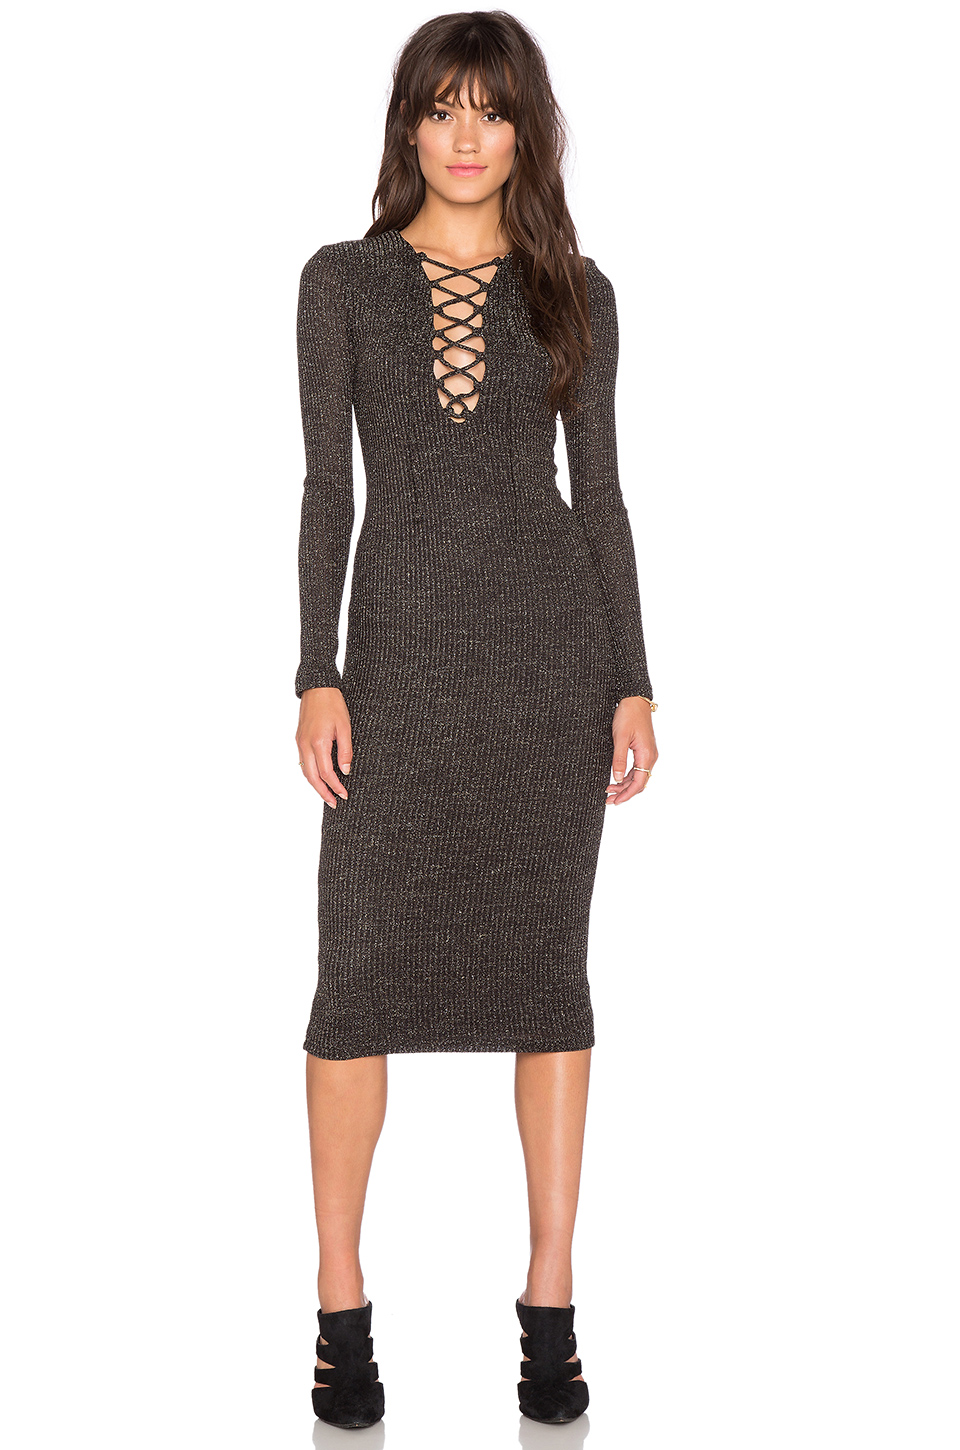 Bardot Lace-Up Dress,  Revolve , $130